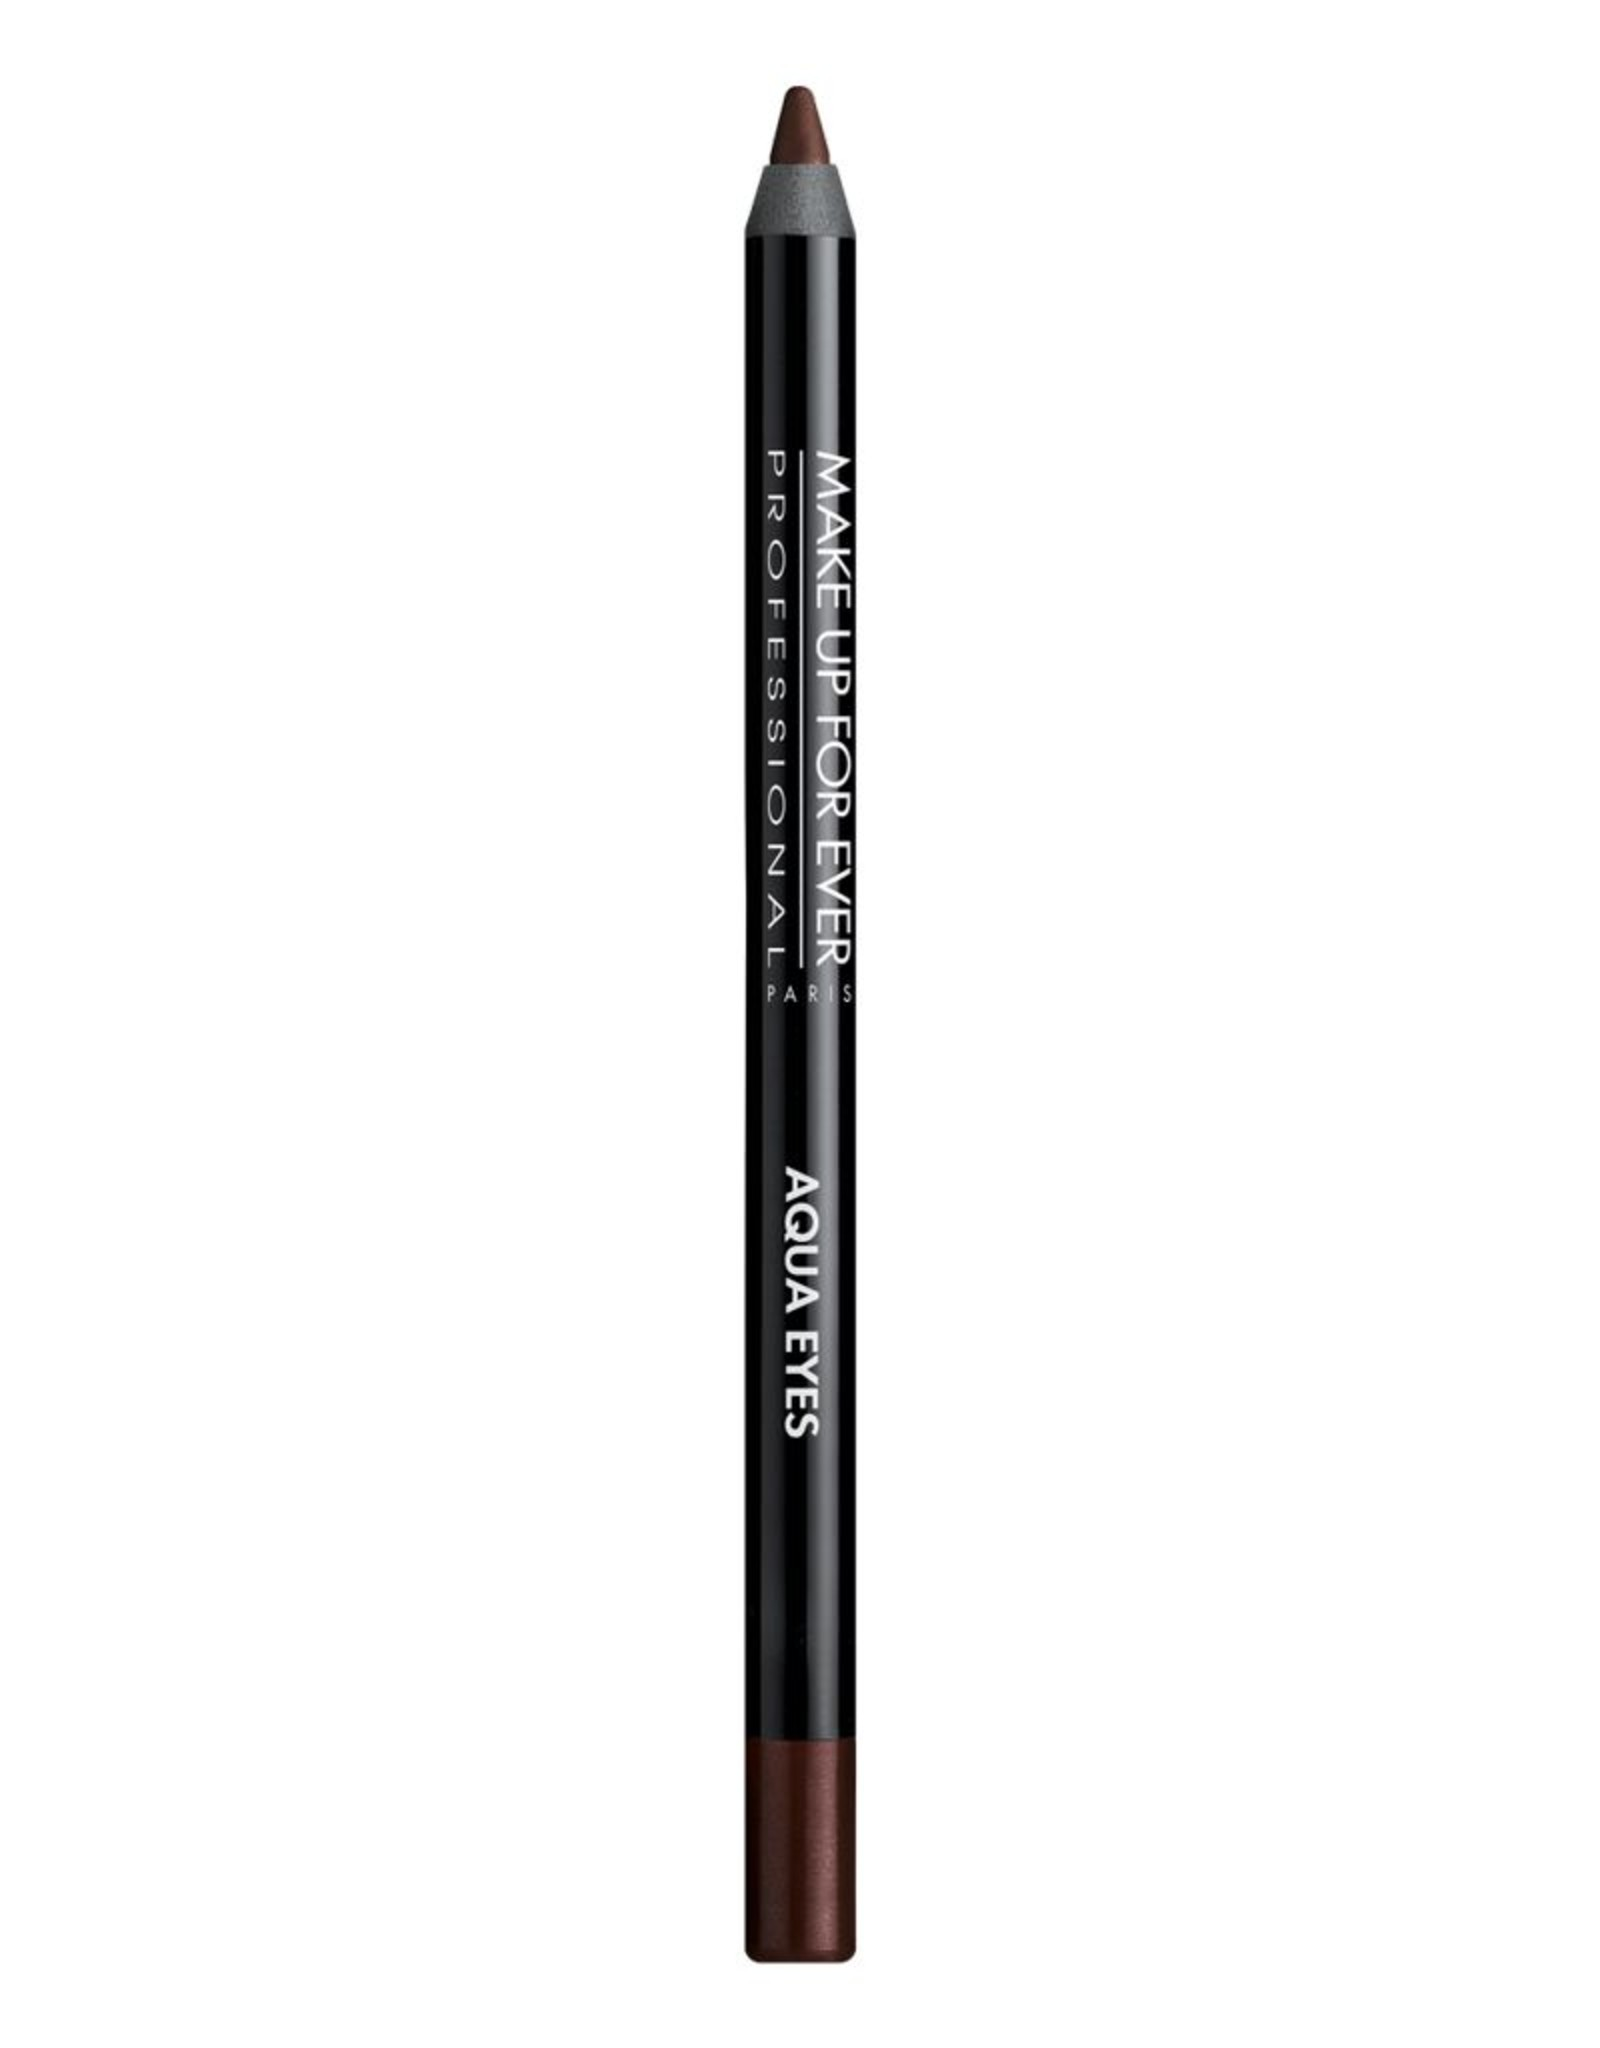 MUFE AQUA EYES CRAYON YEUX WTP NACRE 1,2g 2L marron nacre / pearly brown